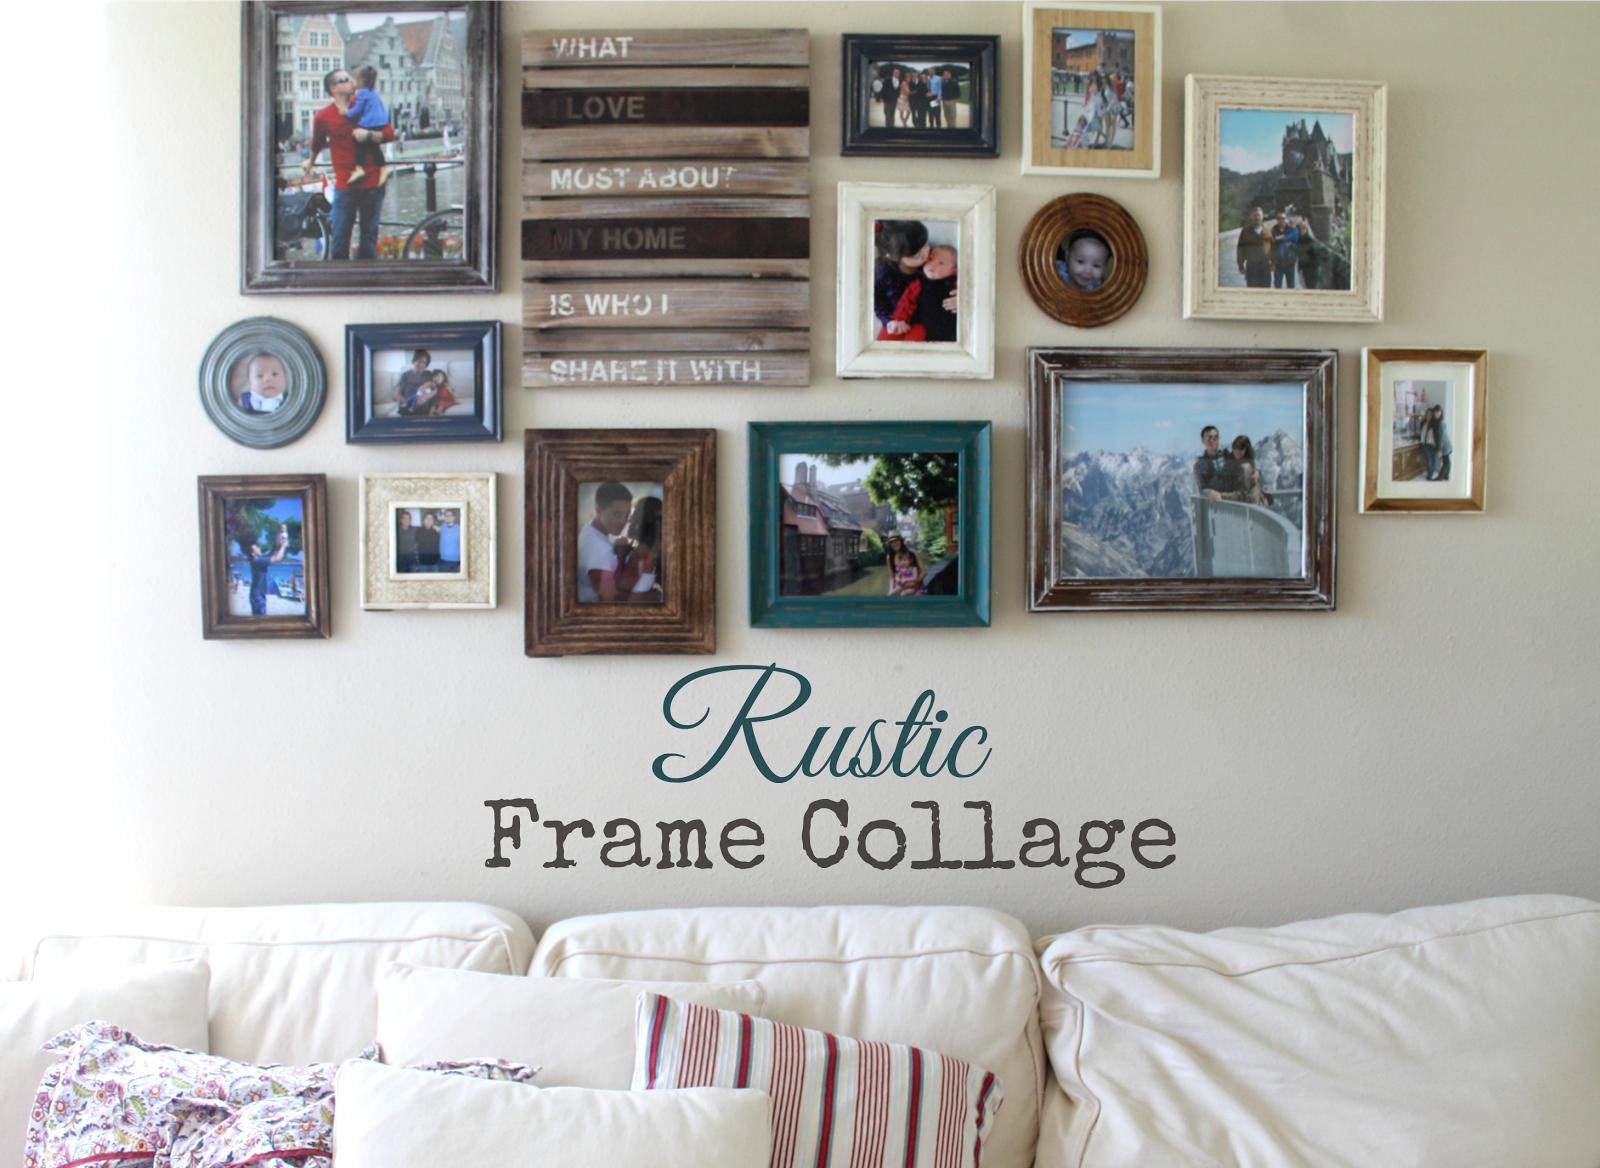 Wall Photo Frames Collage pretty rustic frame collage. frames from michaels, tj maxx, home